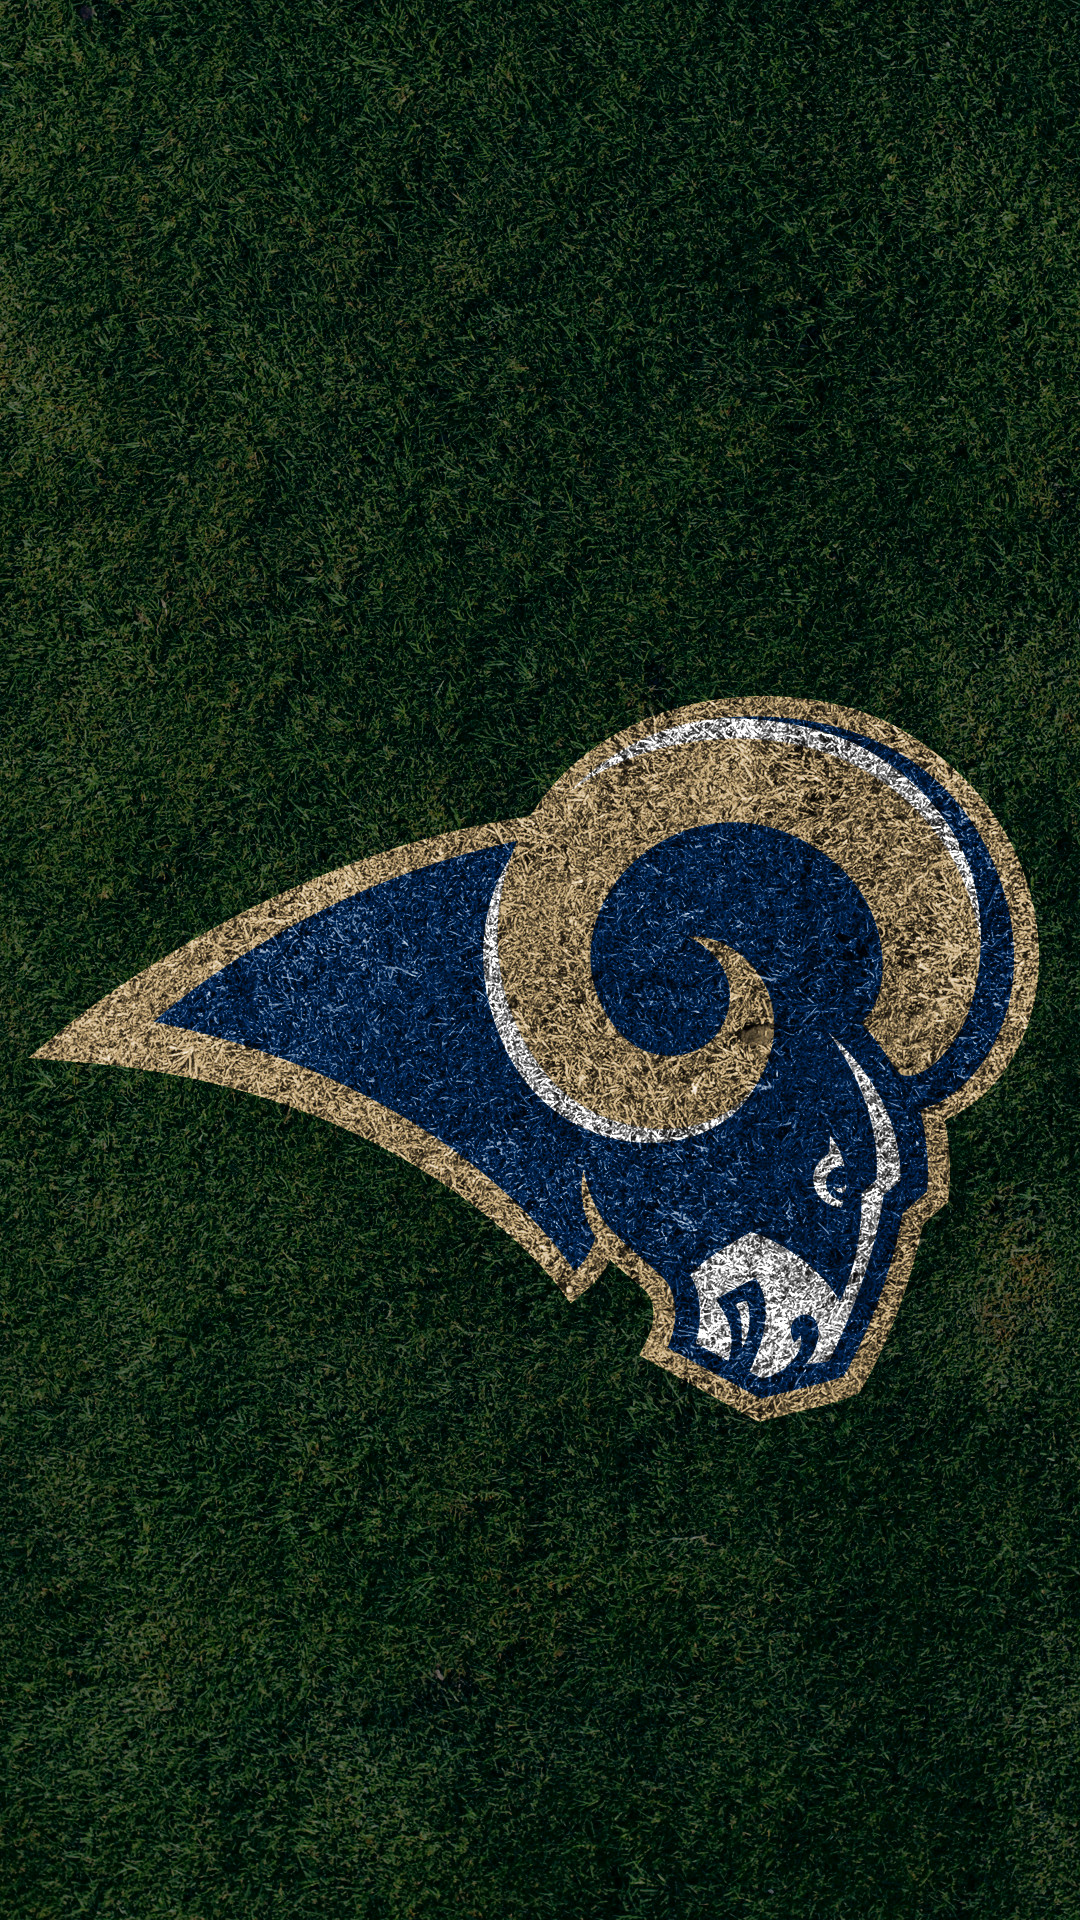 Res: 1080x1920, ... Los Angeles Rams 2017 turf logo wallpaper free iphone 5, 6, 7, galaxy